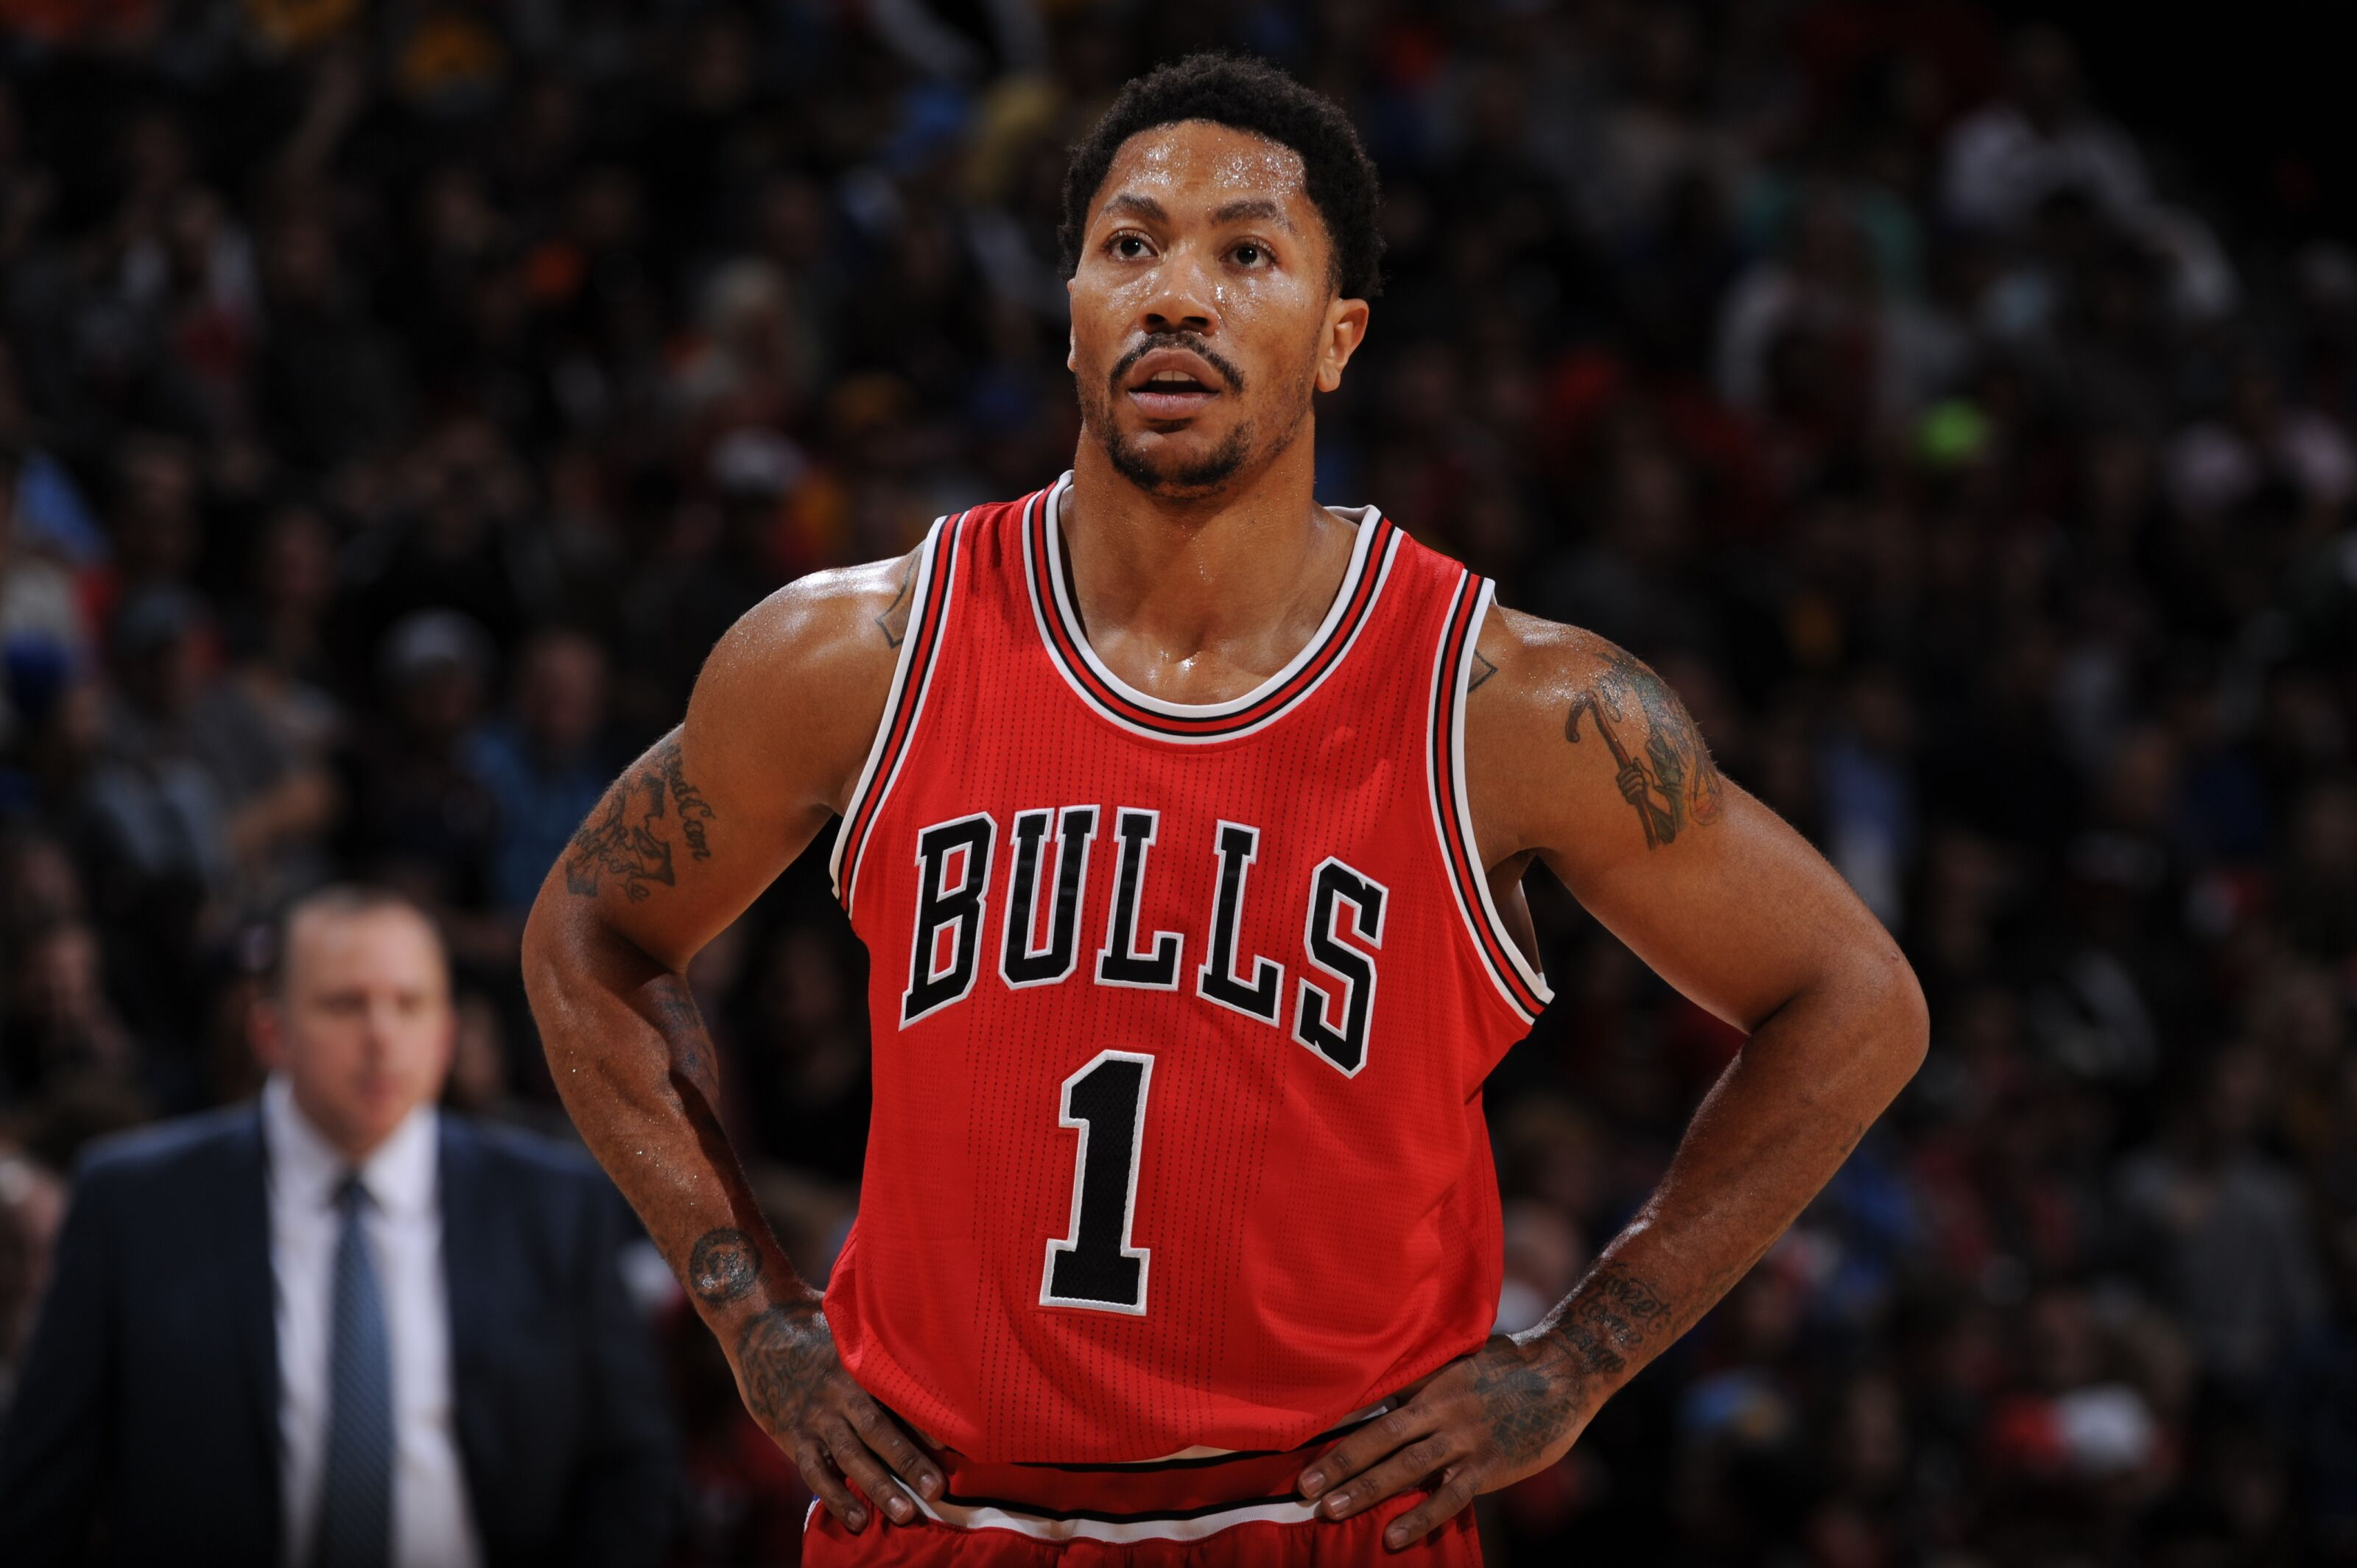 huge discount 8ad4c 6f0a1 Should the Chicago Bulls retire Derrick Rose's jersey number?